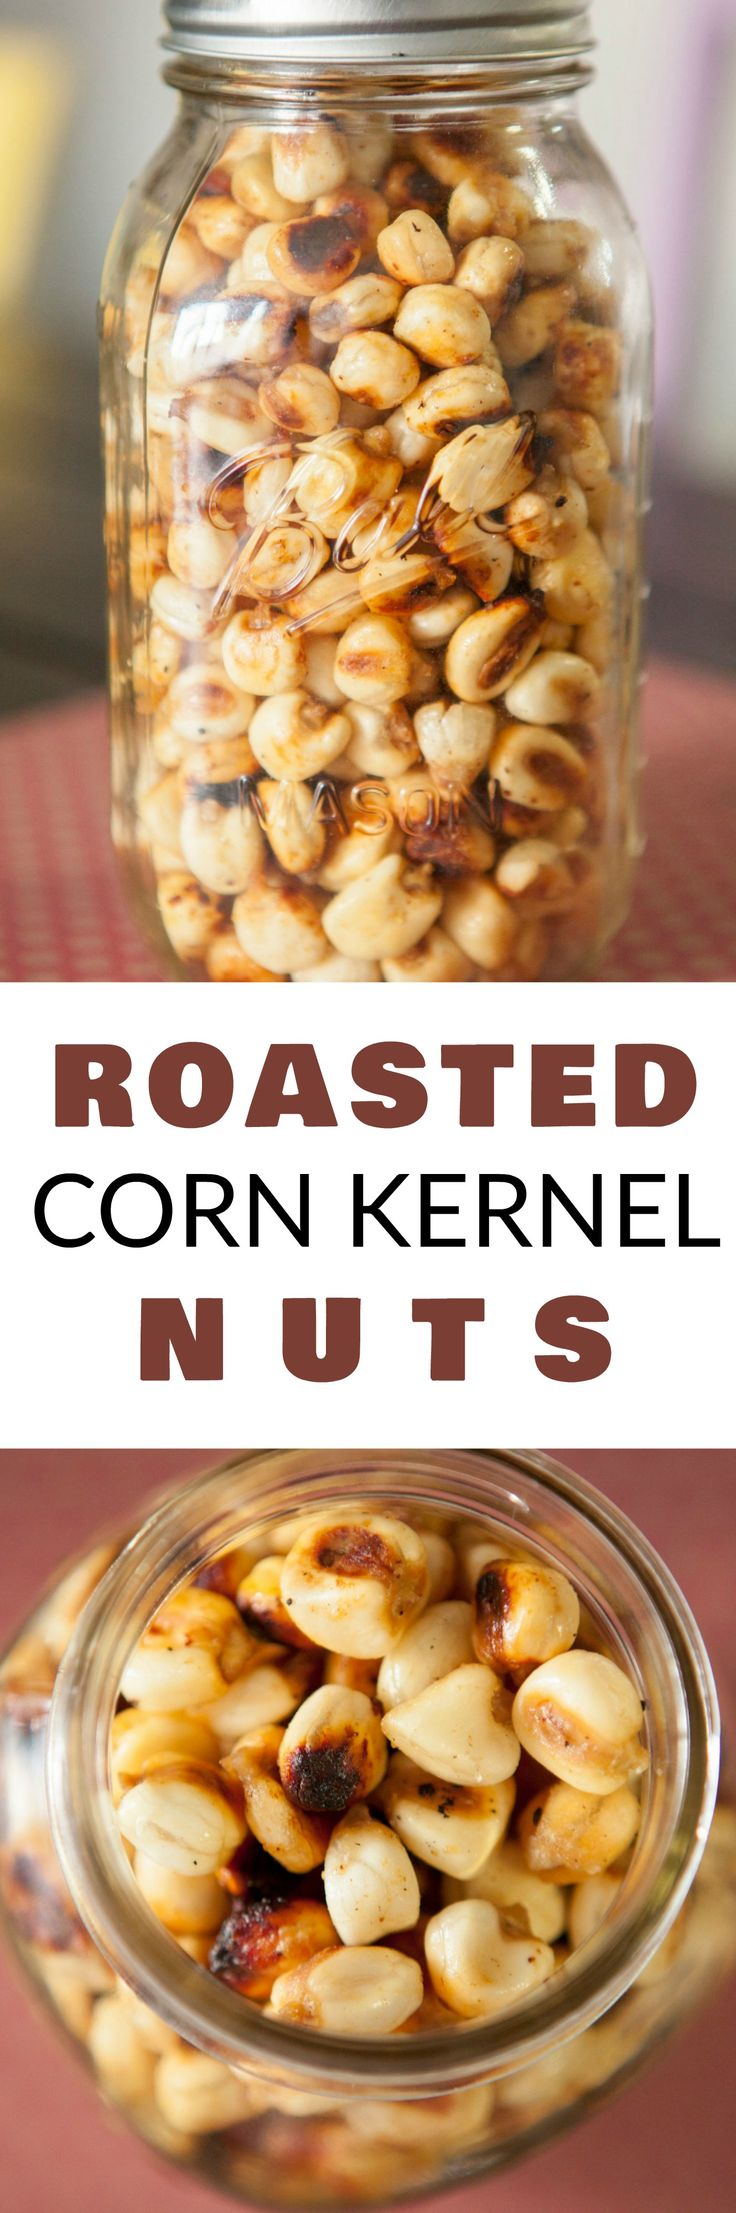 Homemade HEALTHY Roasted Corn Kernel Nuts that taste just like Corn Nuts you buy in the store!  This DIY recipe is easy to make and only uses 4 ingredients!  Bake them in the oven for 30 minutes for a healthy, perfect snack!